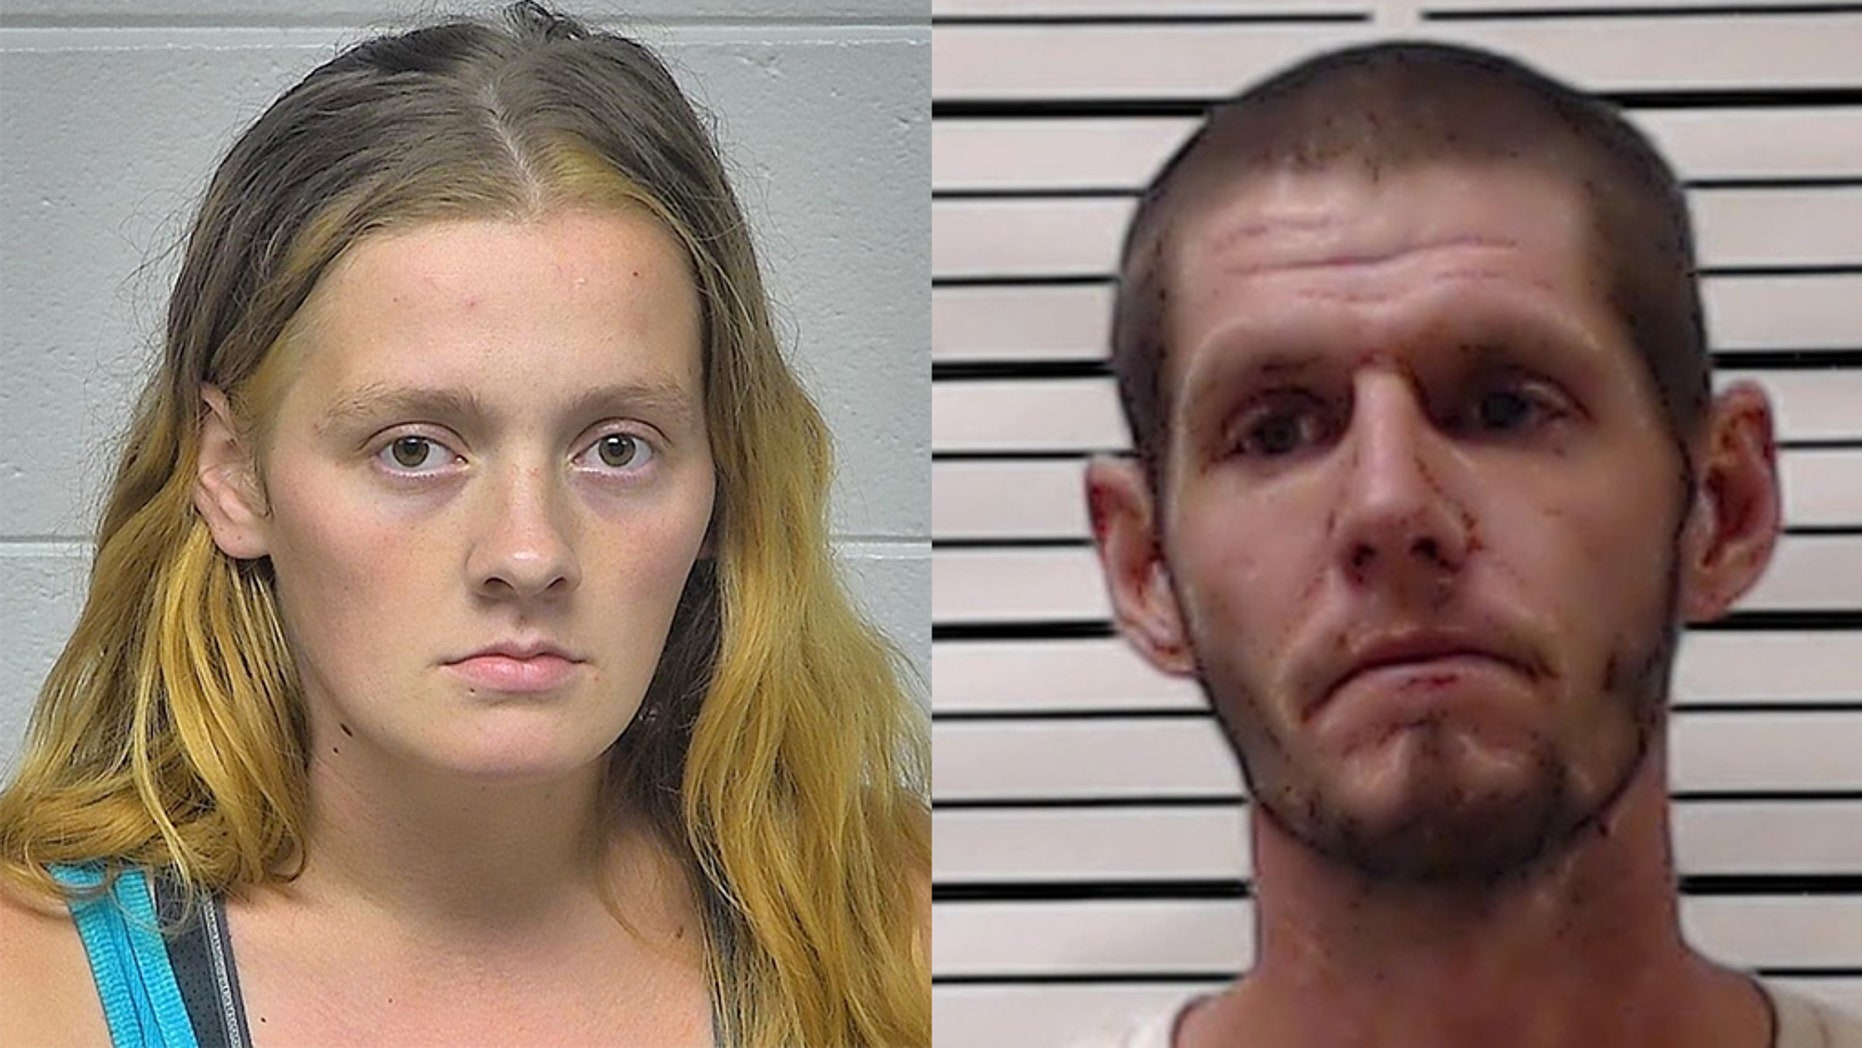 Tara L. Savage (left) and Deven G. Frisque (right) were arrested and charged this week following the death of their 3-month-old son